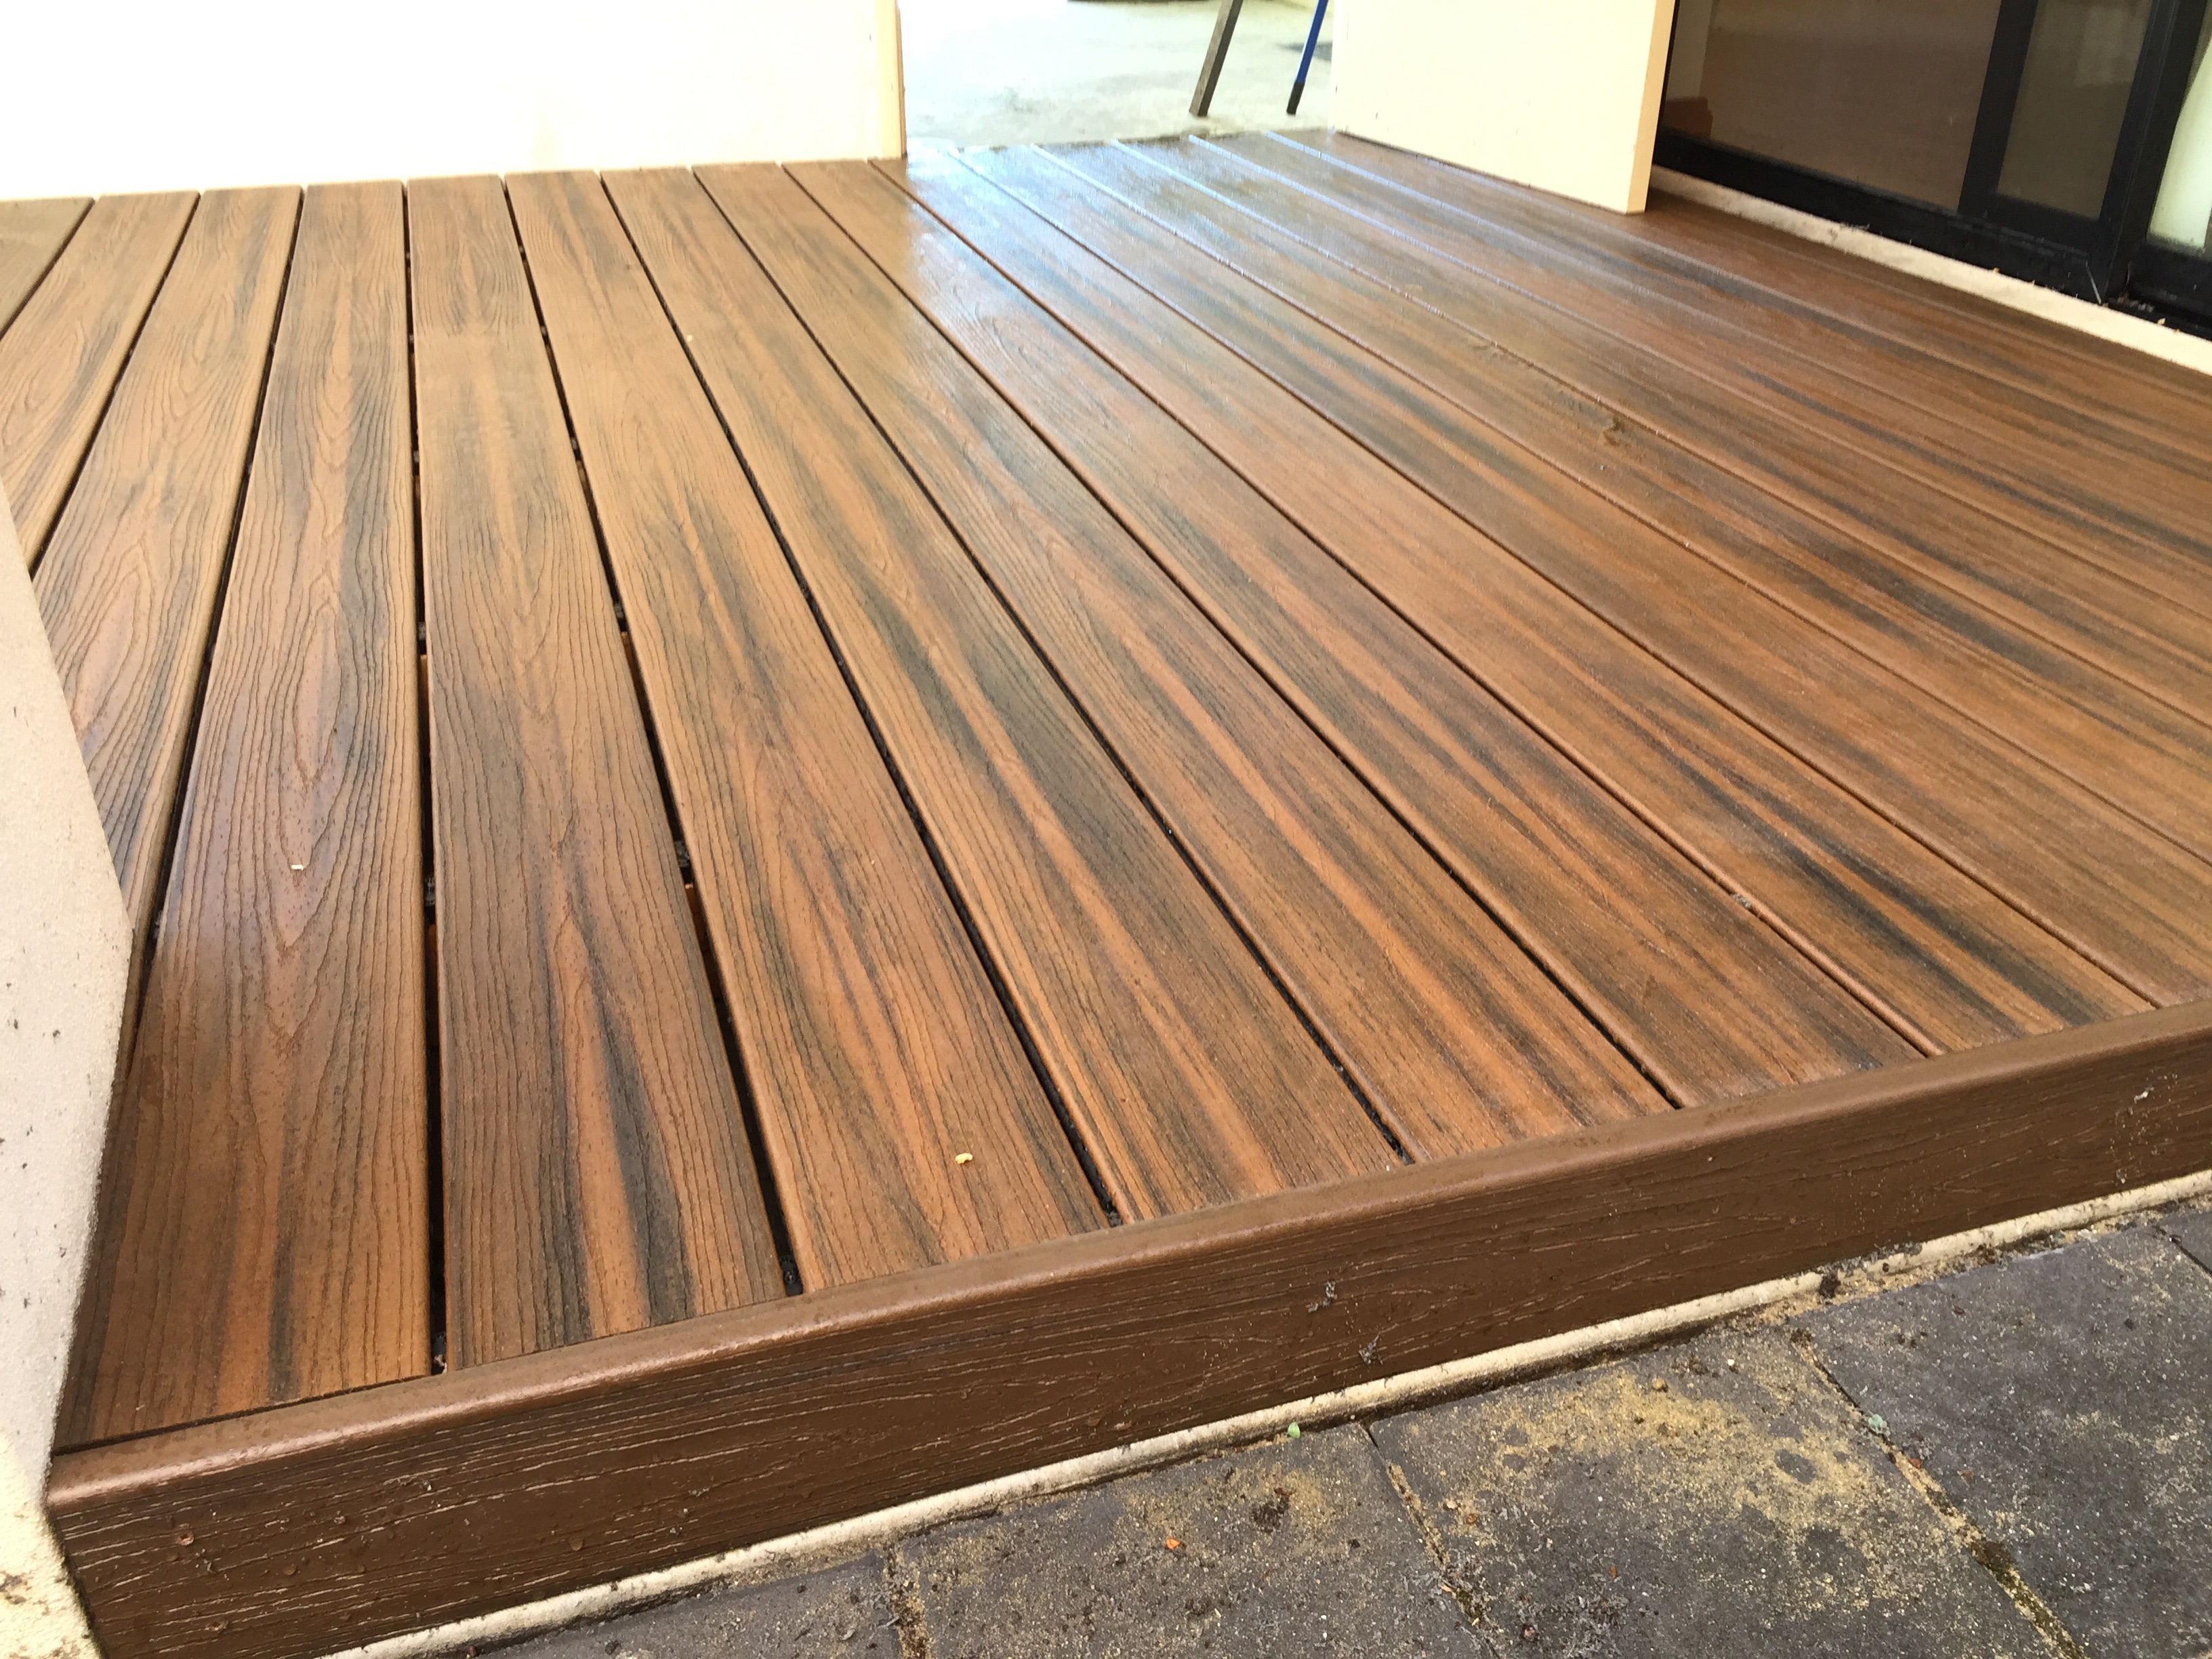 Trex deck boards composite decking perth for Compare composite decking brands